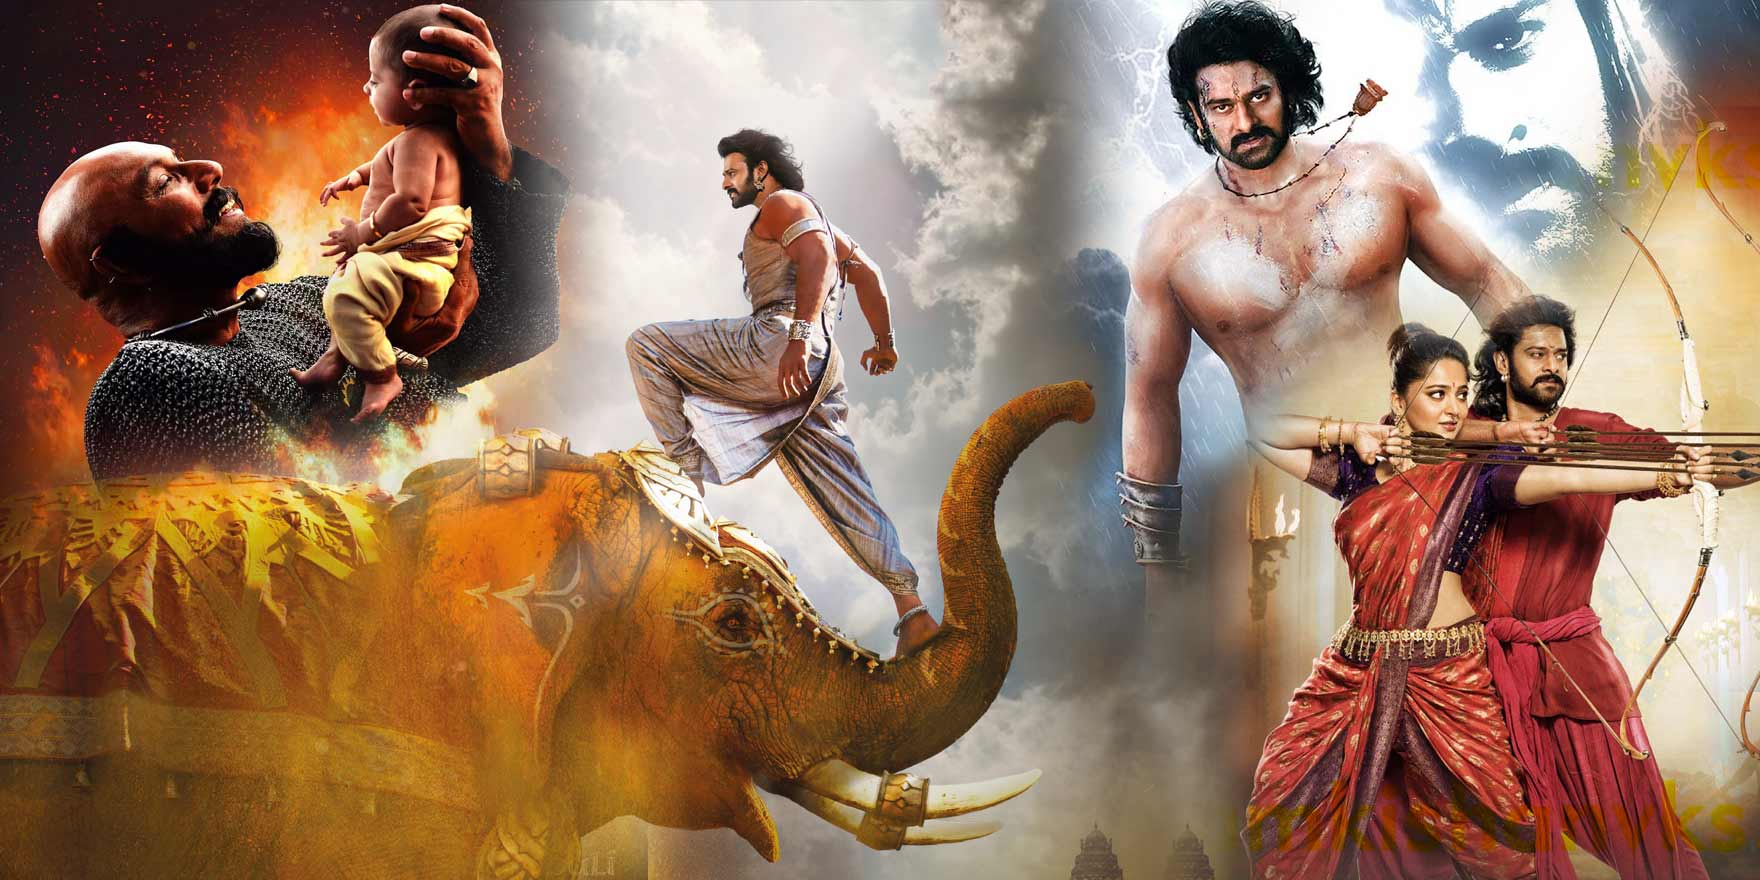 Baahubali 2: The Conclusion - Header Image